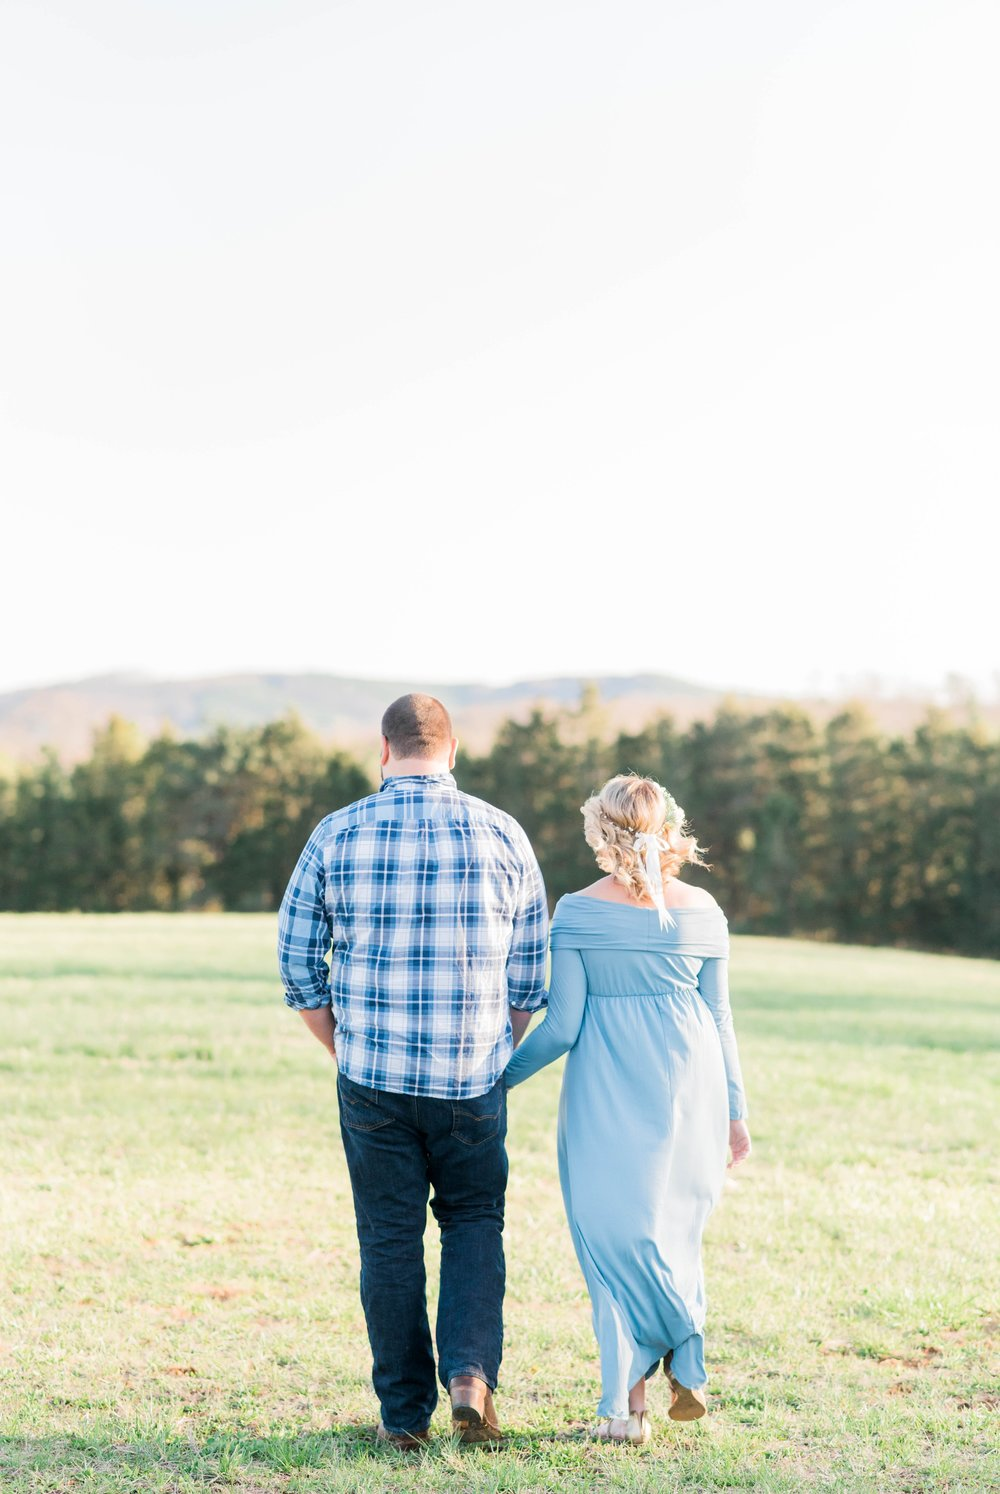 SorellaFarms_Jessica+Dylan_MaternitySession_Virginiaweddingphotographer 23.jpg